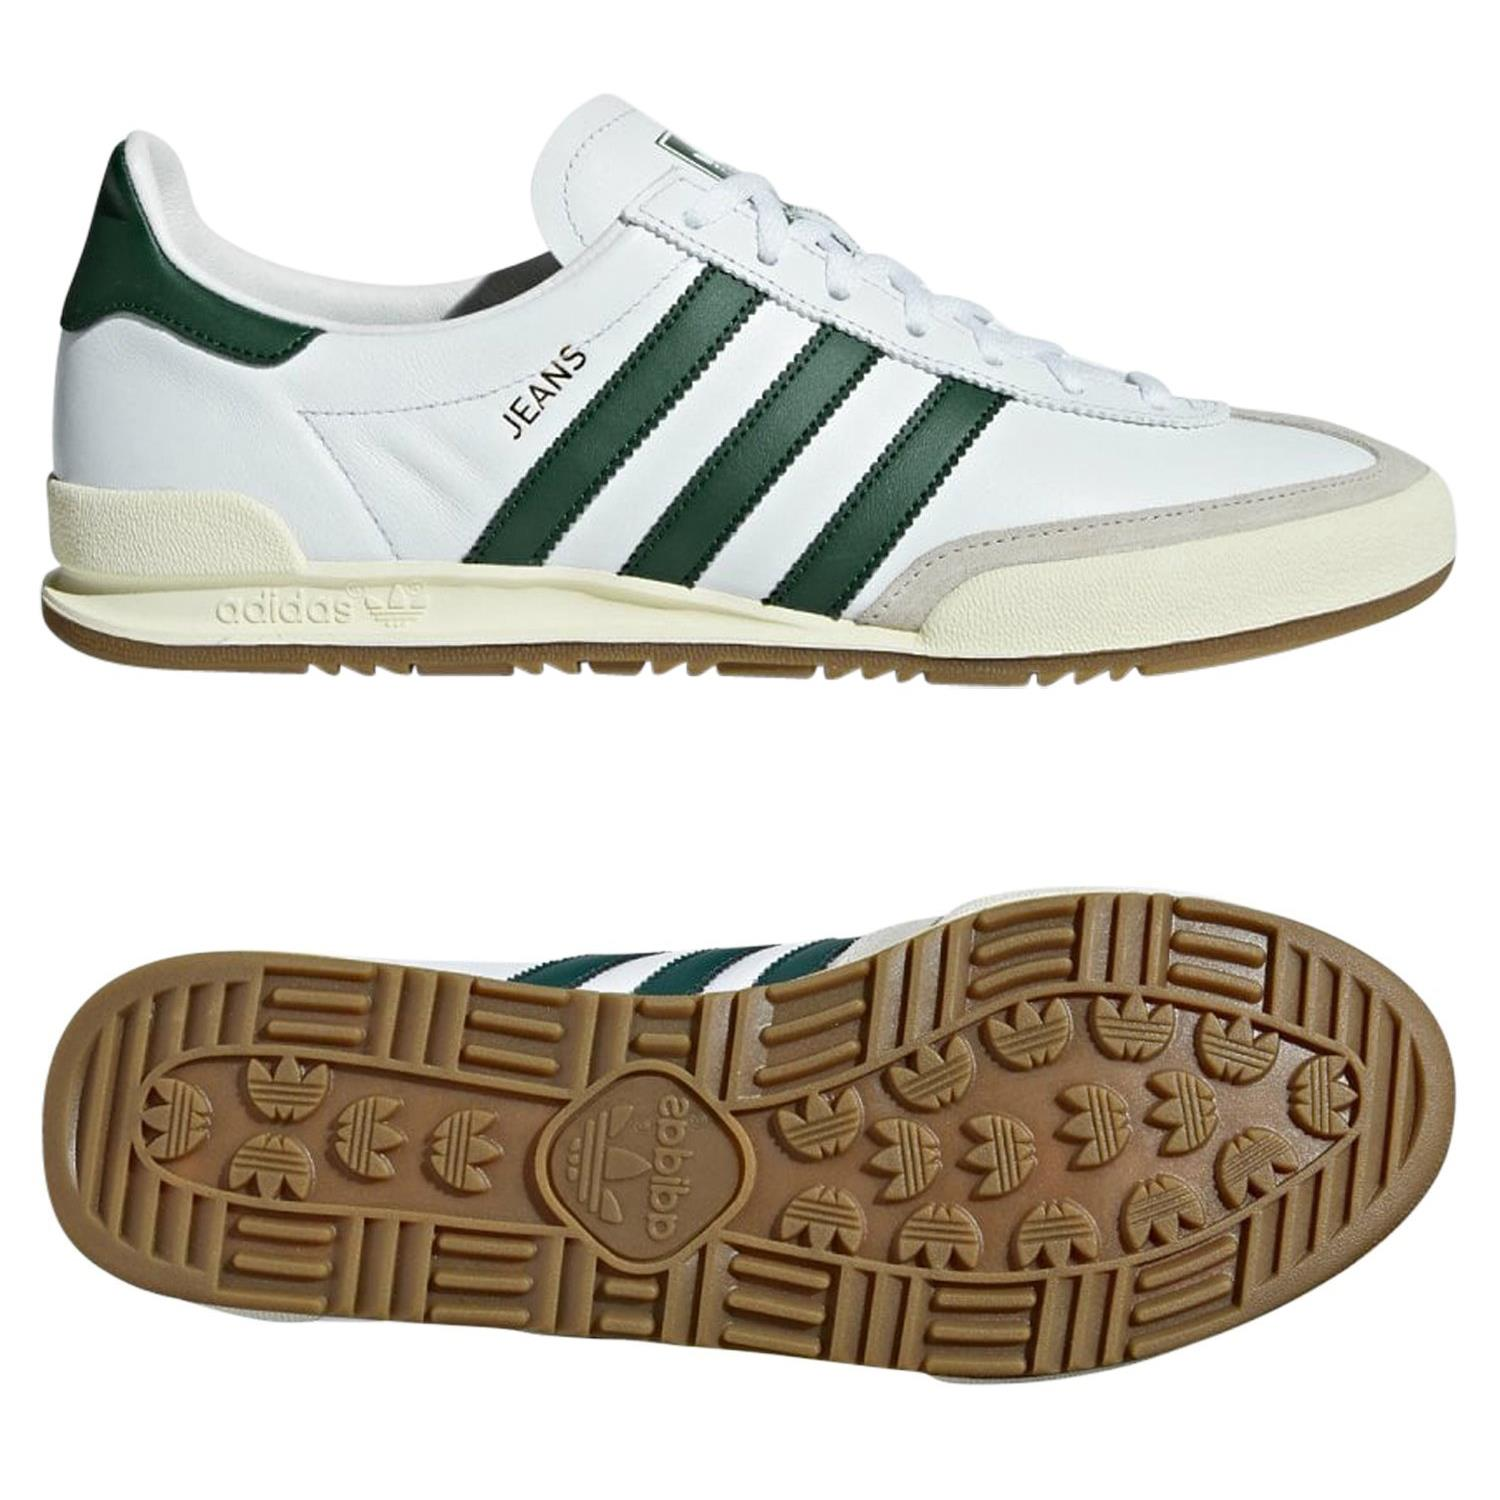 VINTAGE ADIDAS ORIGINALS Tennis Shoe